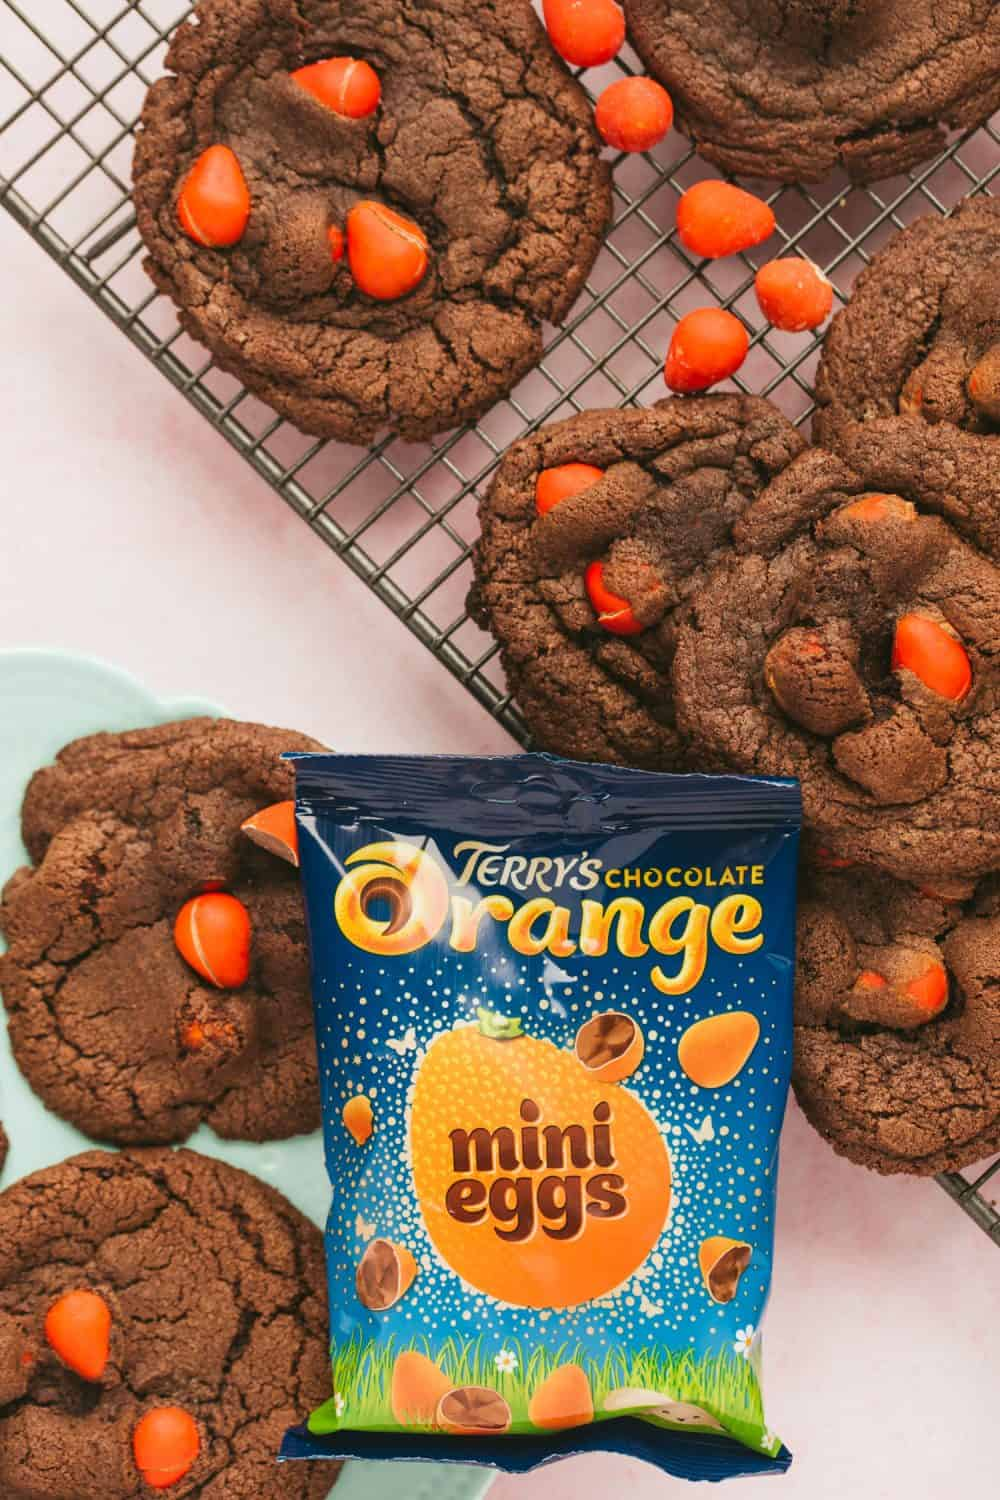 large chocolate mini egg cookies with Easter chocolate inside. Visible is a bad of Terry's chocolate orange mini eggs.